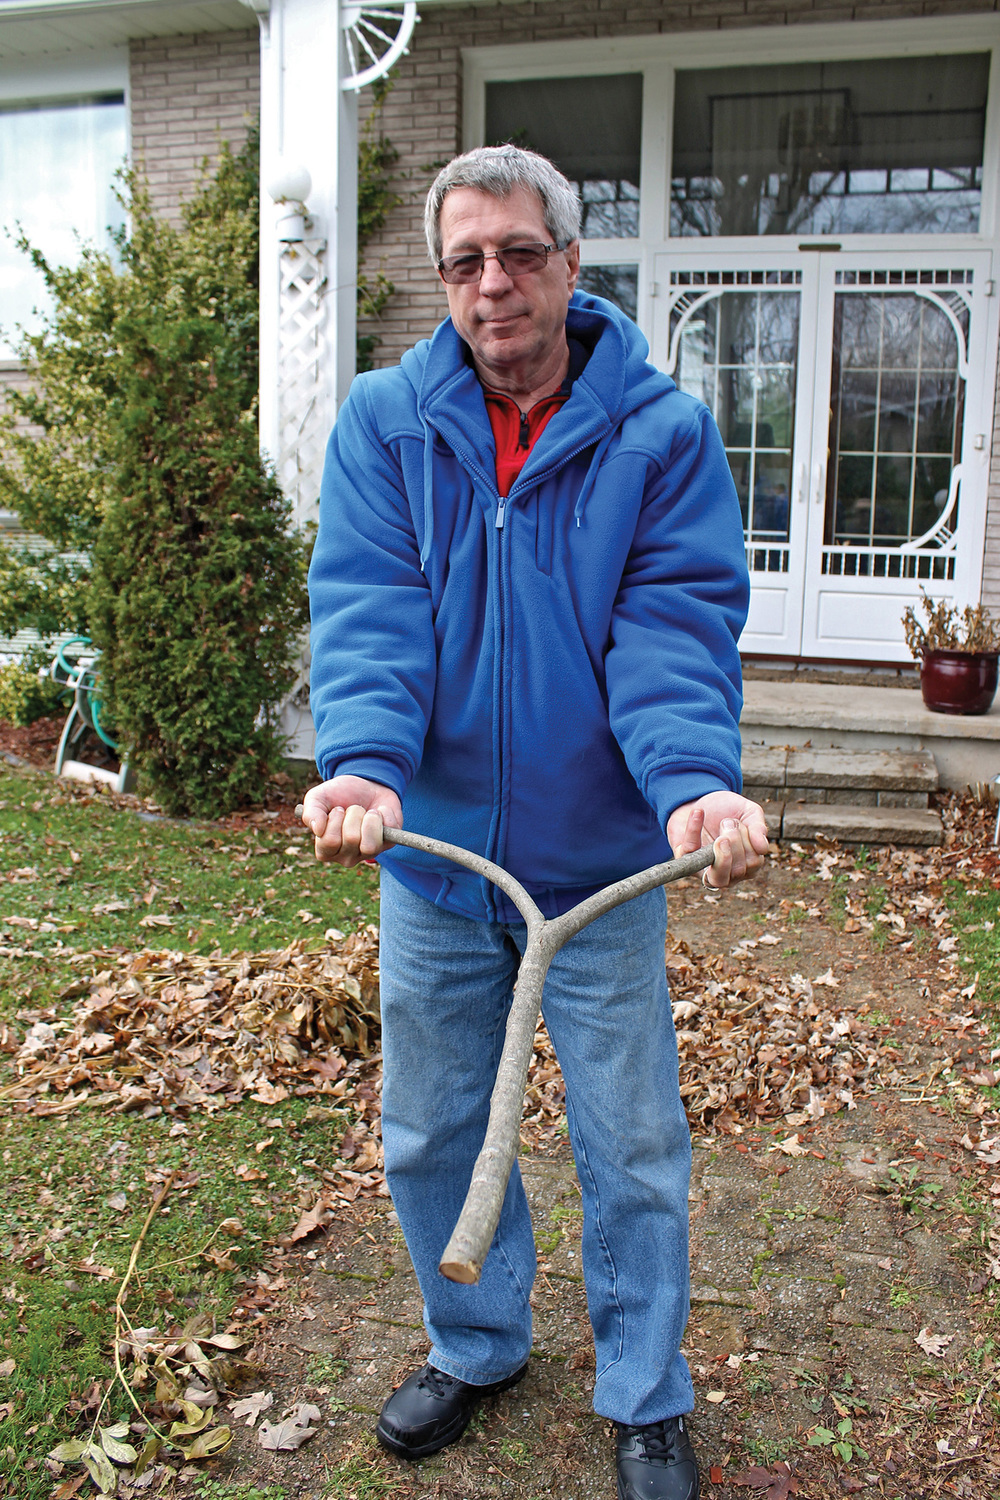 Marmora's Doug Alcock was taught how to witch by his mother when he was 14 years old.